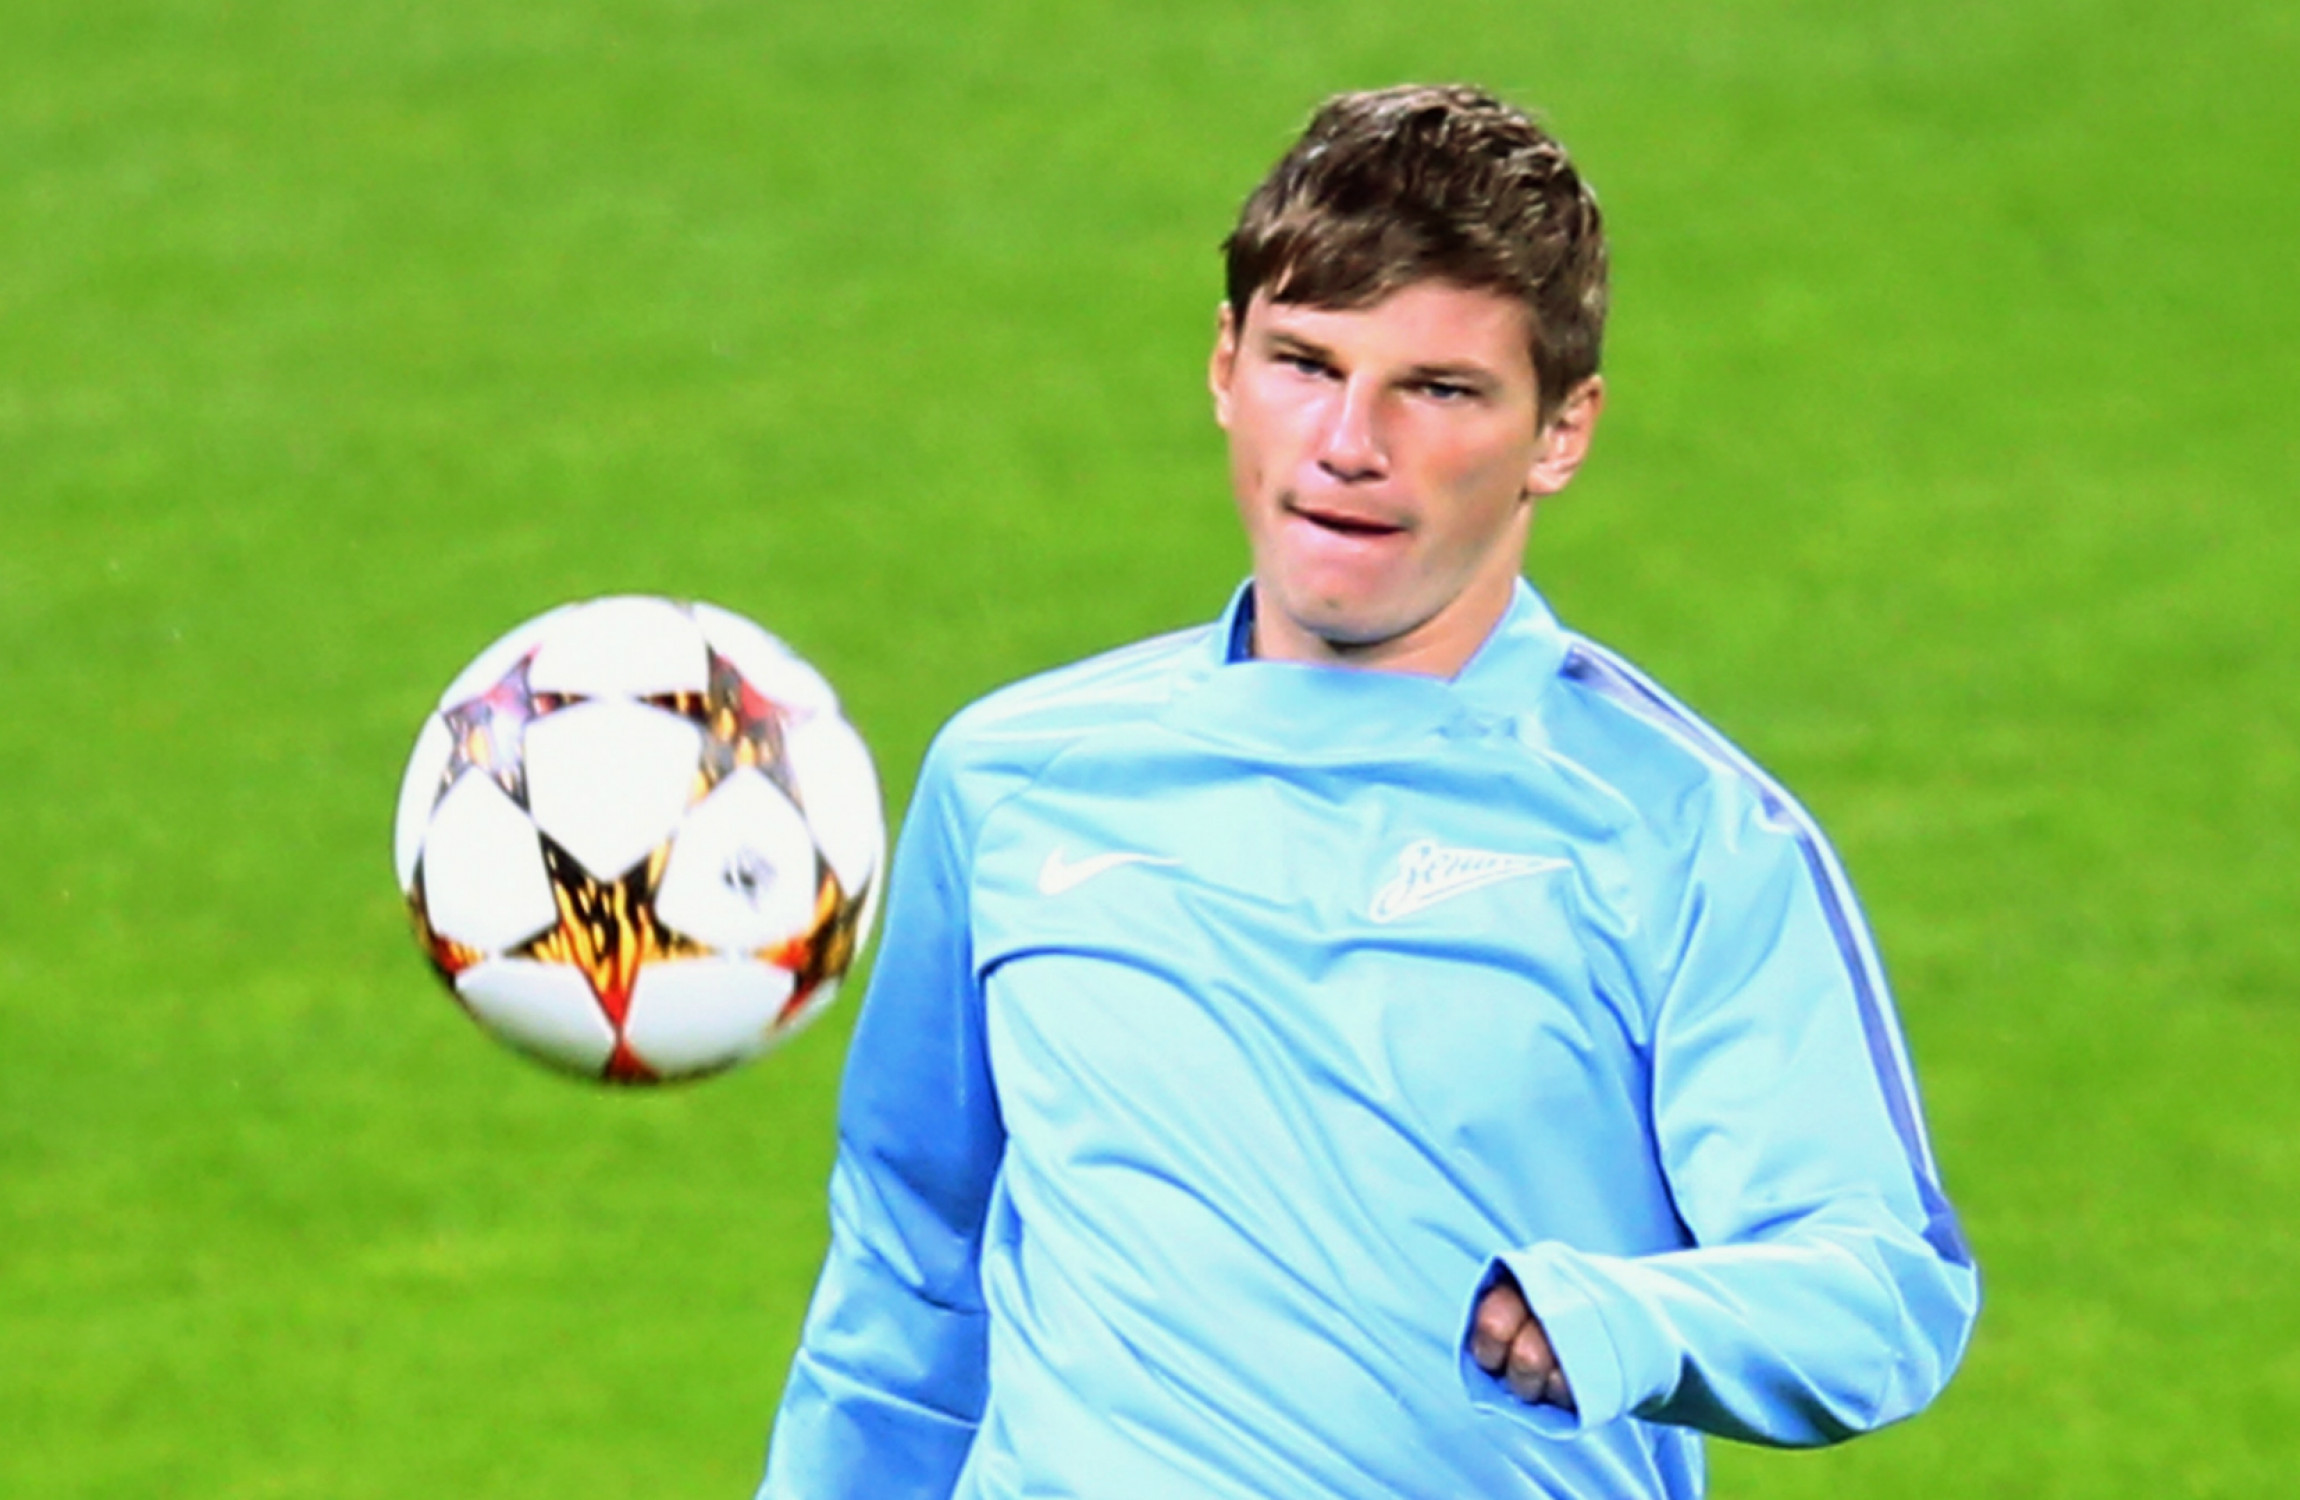 Andrei Arshavin spoke about the reasons for the break with his second wife 06.11.2017 1